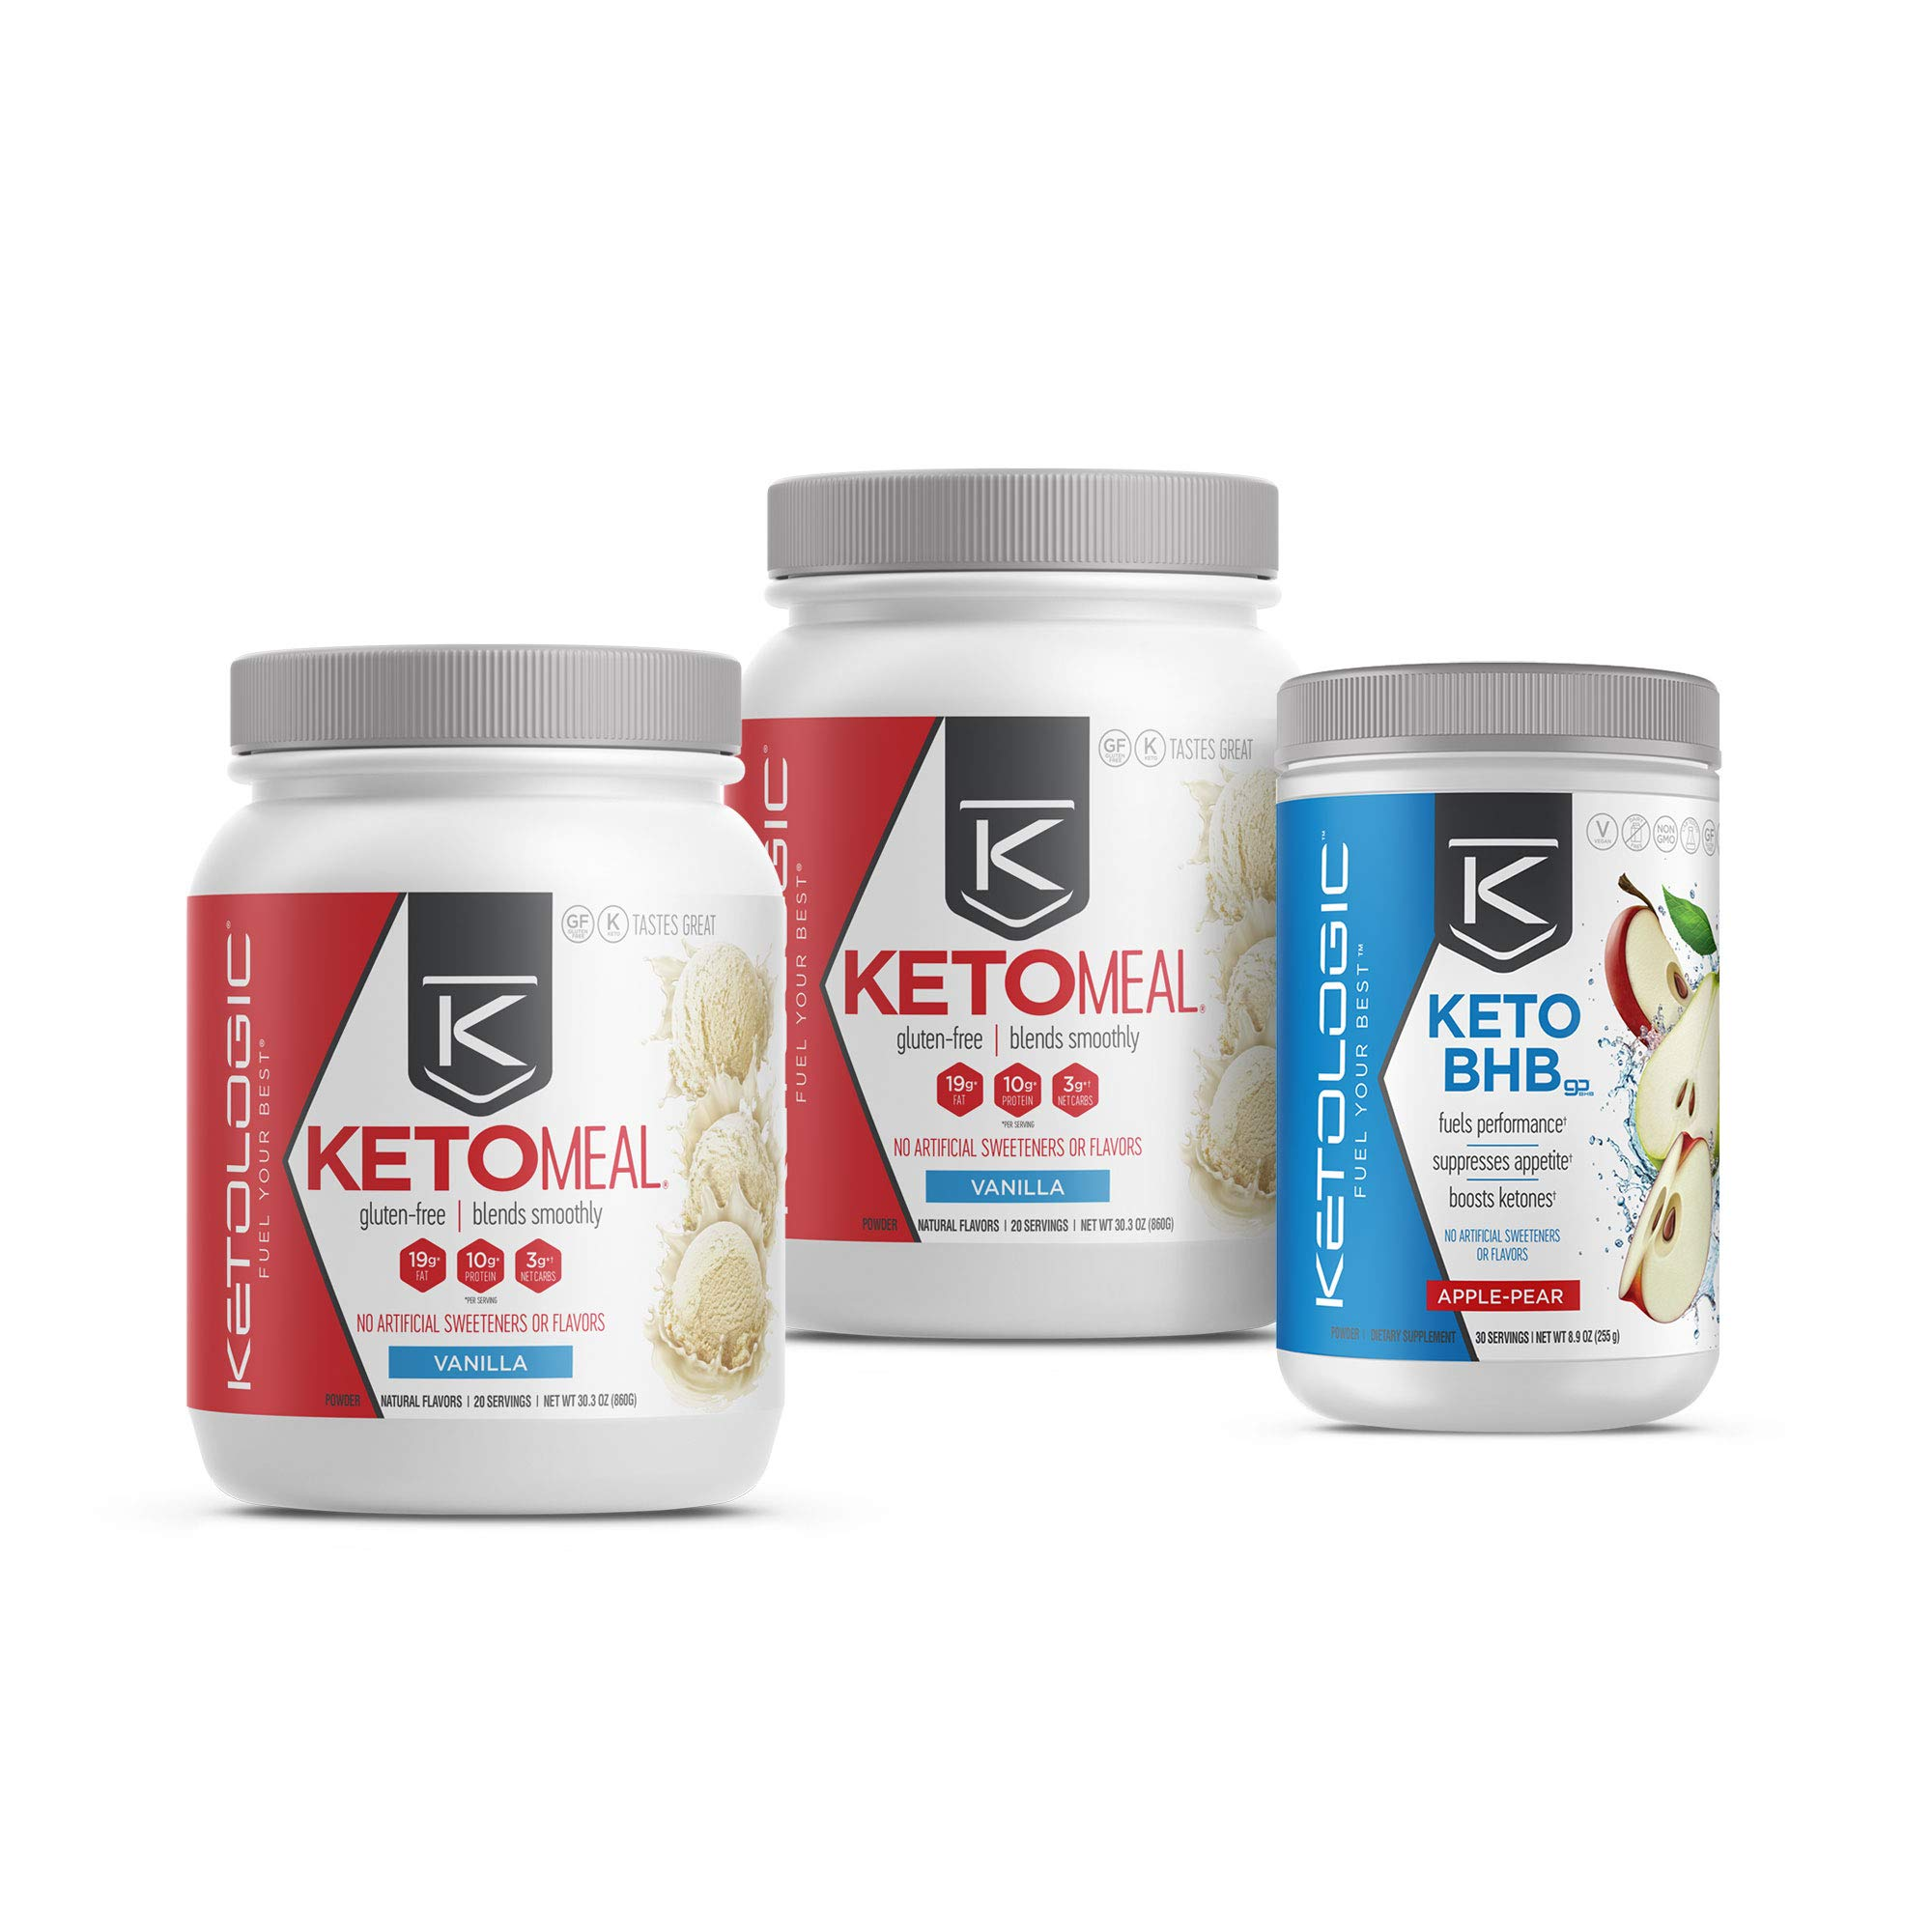 KetoLogic Keto 30 Challenge Bundle, 30-Day Supply | Includes 2 Meal Replacement Shakes with MCT [Vanilla] & 1 BHB Salt [Apple-Pear] | Suppresses Appetite, Promotes Weight Loss & Increases Energy by Ketologic